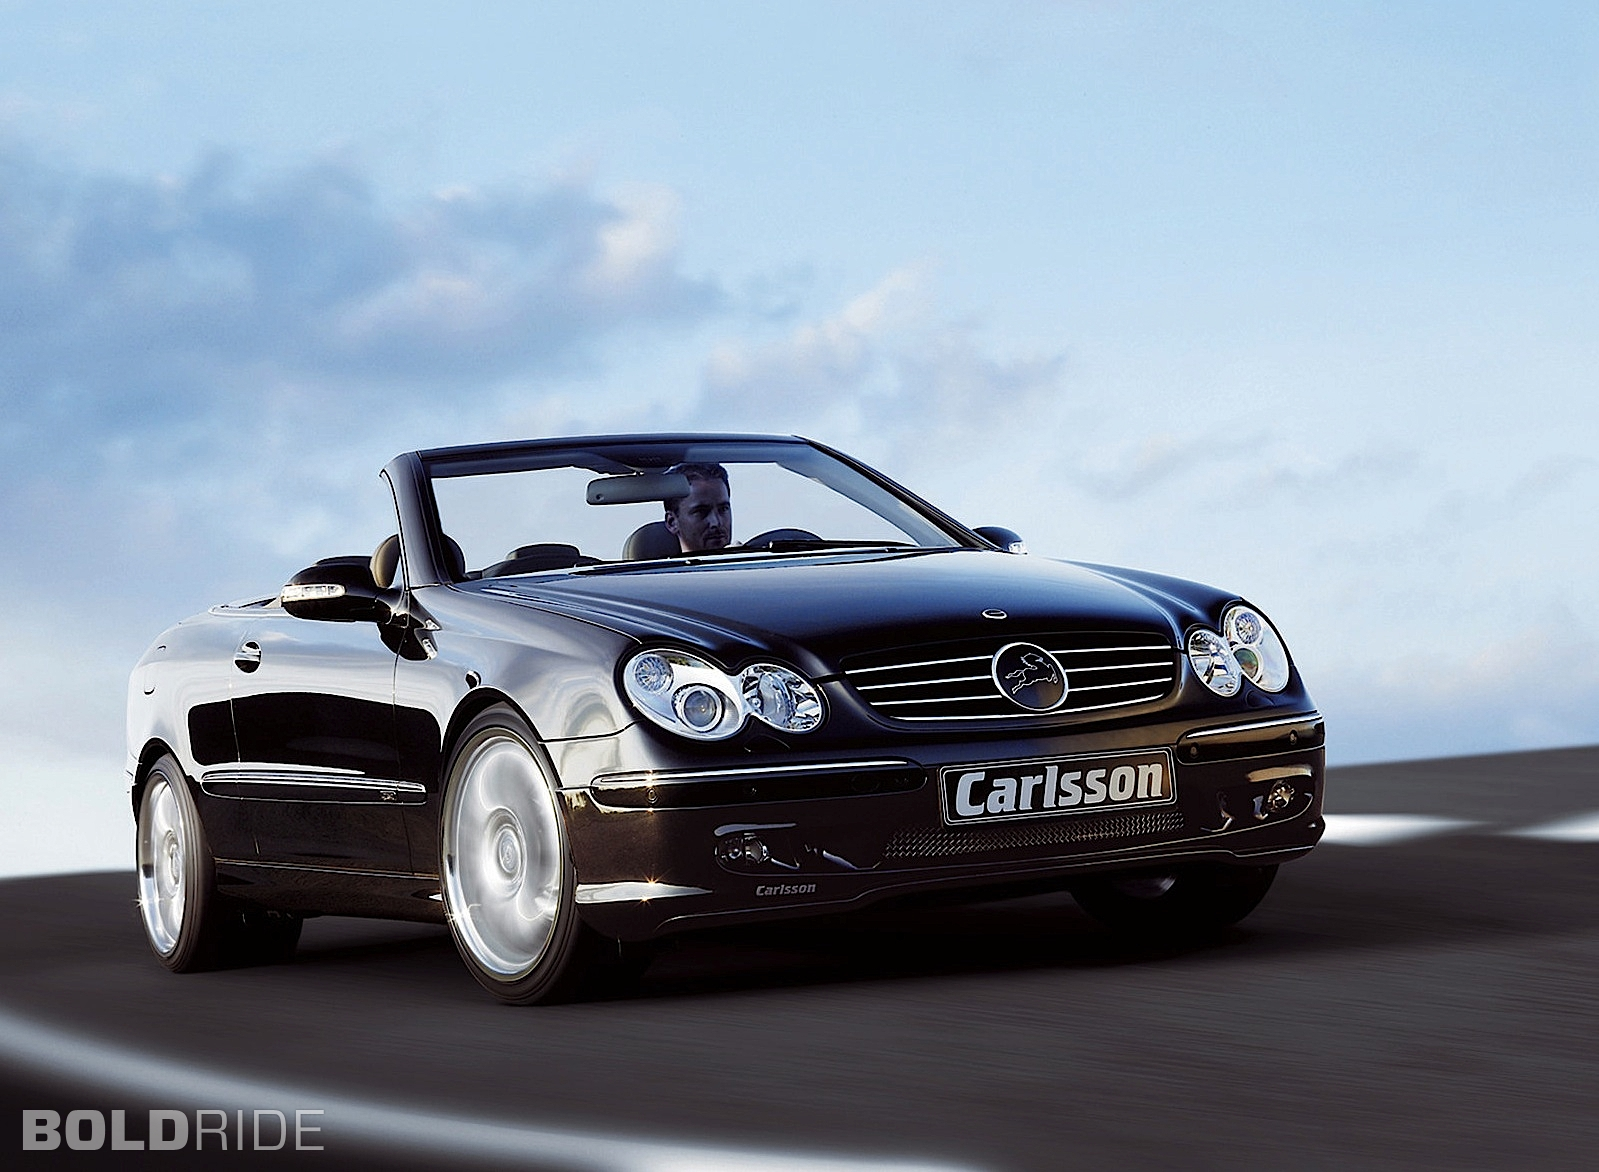 2003 mercedes benz clk class image 10. Black Bedroom Furniture Sets. Home Design Ideas